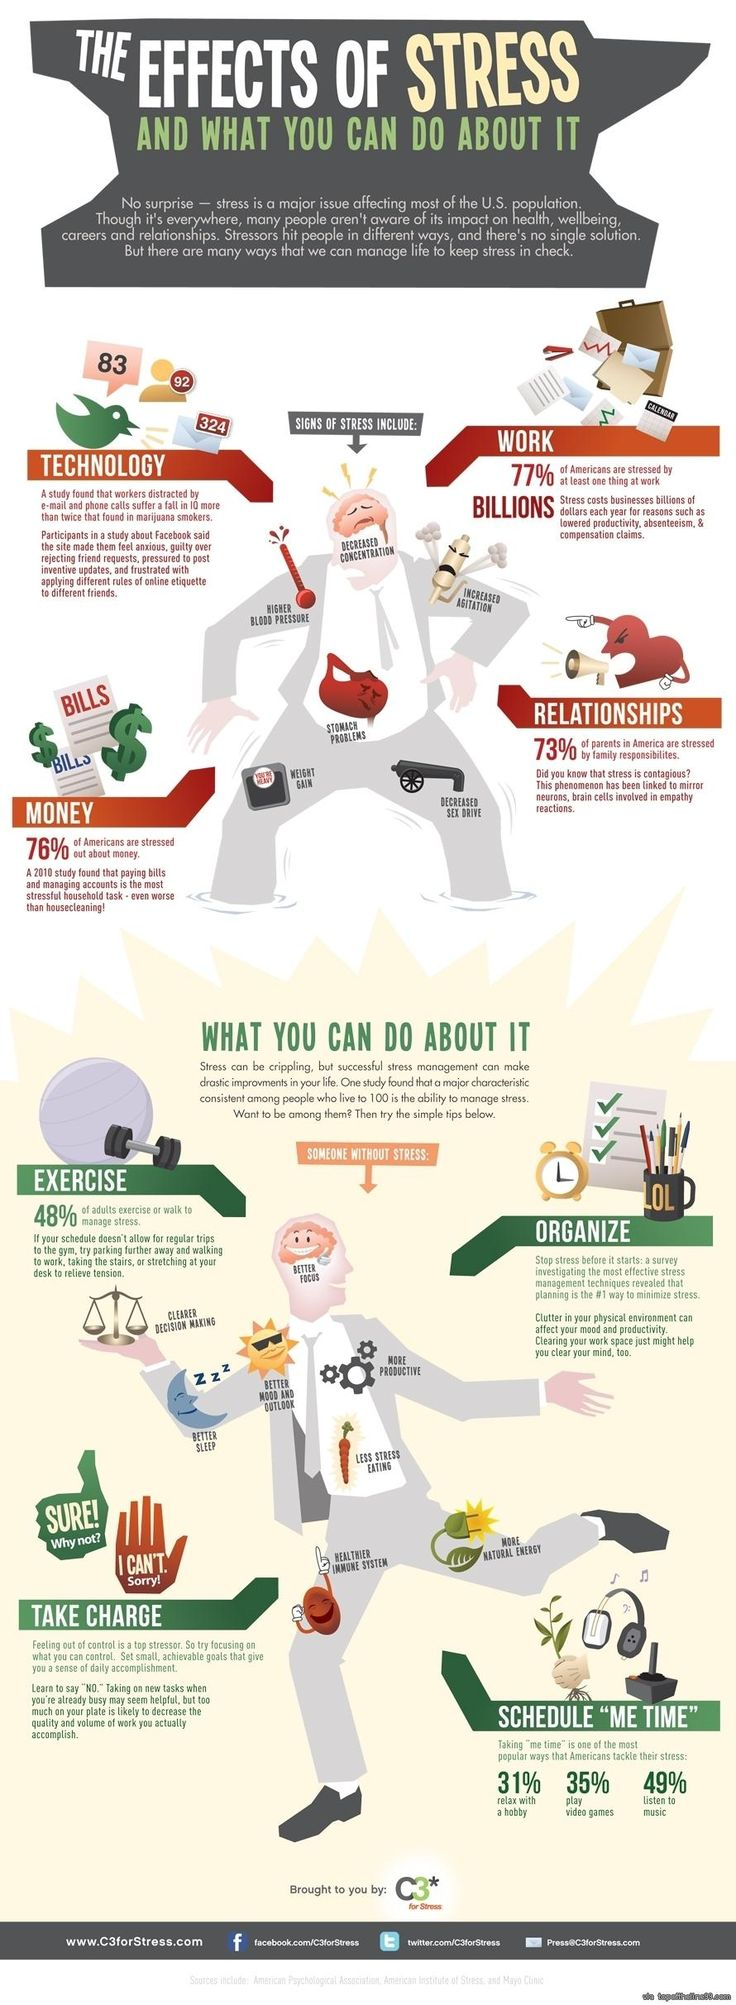 The Effects of Stress and What You Can Do About It   Buzzfeed   Repinned by @keilonegordon